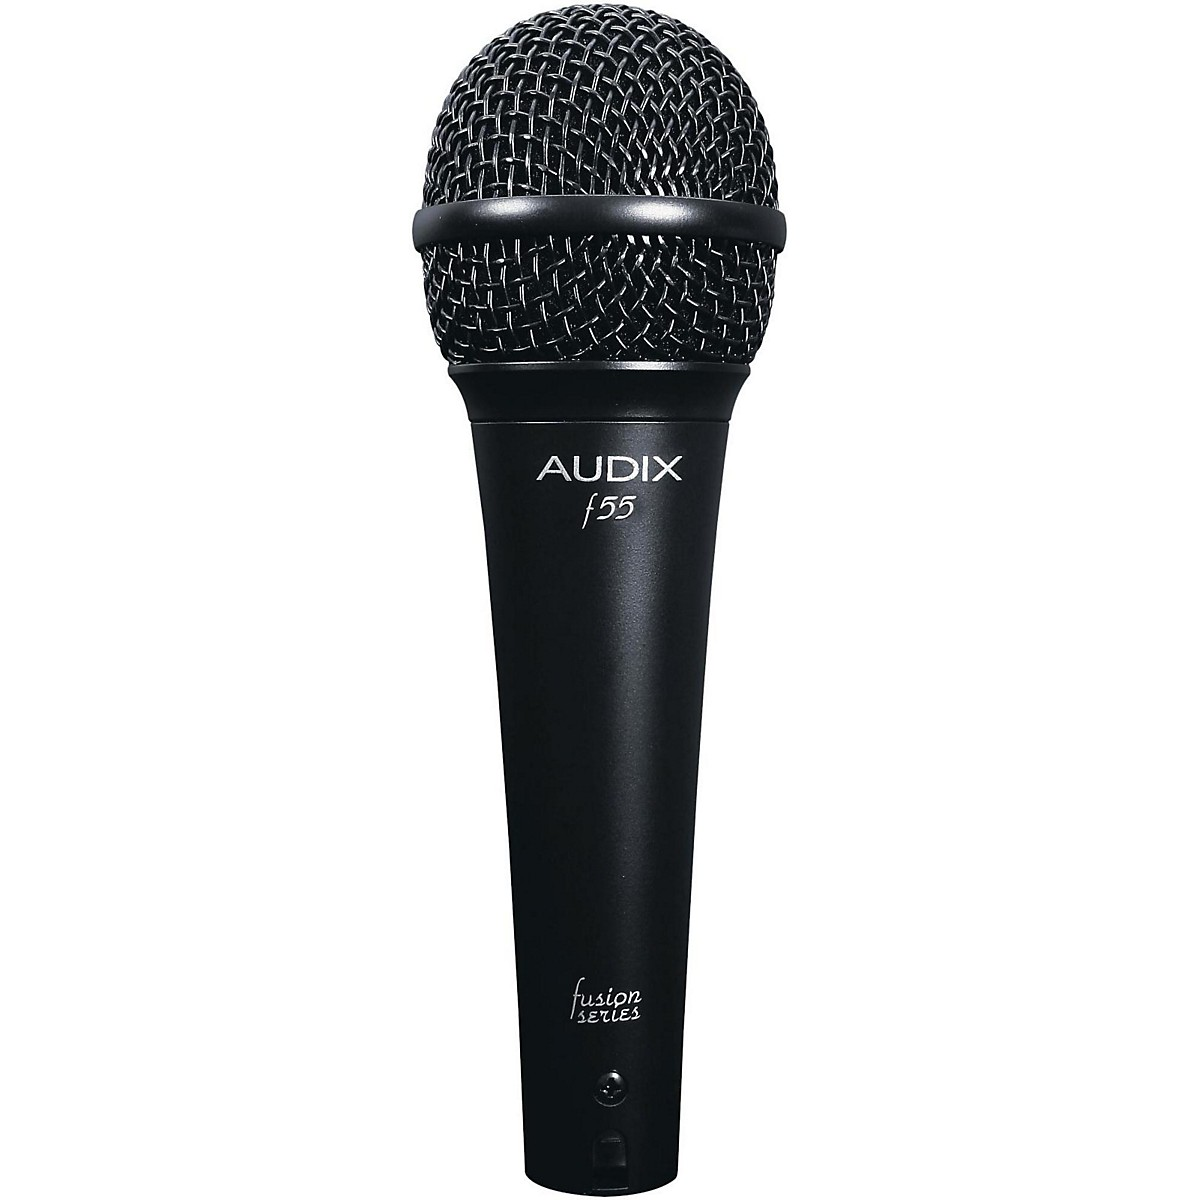 Audix f55 Cardioid Vocal Microphone